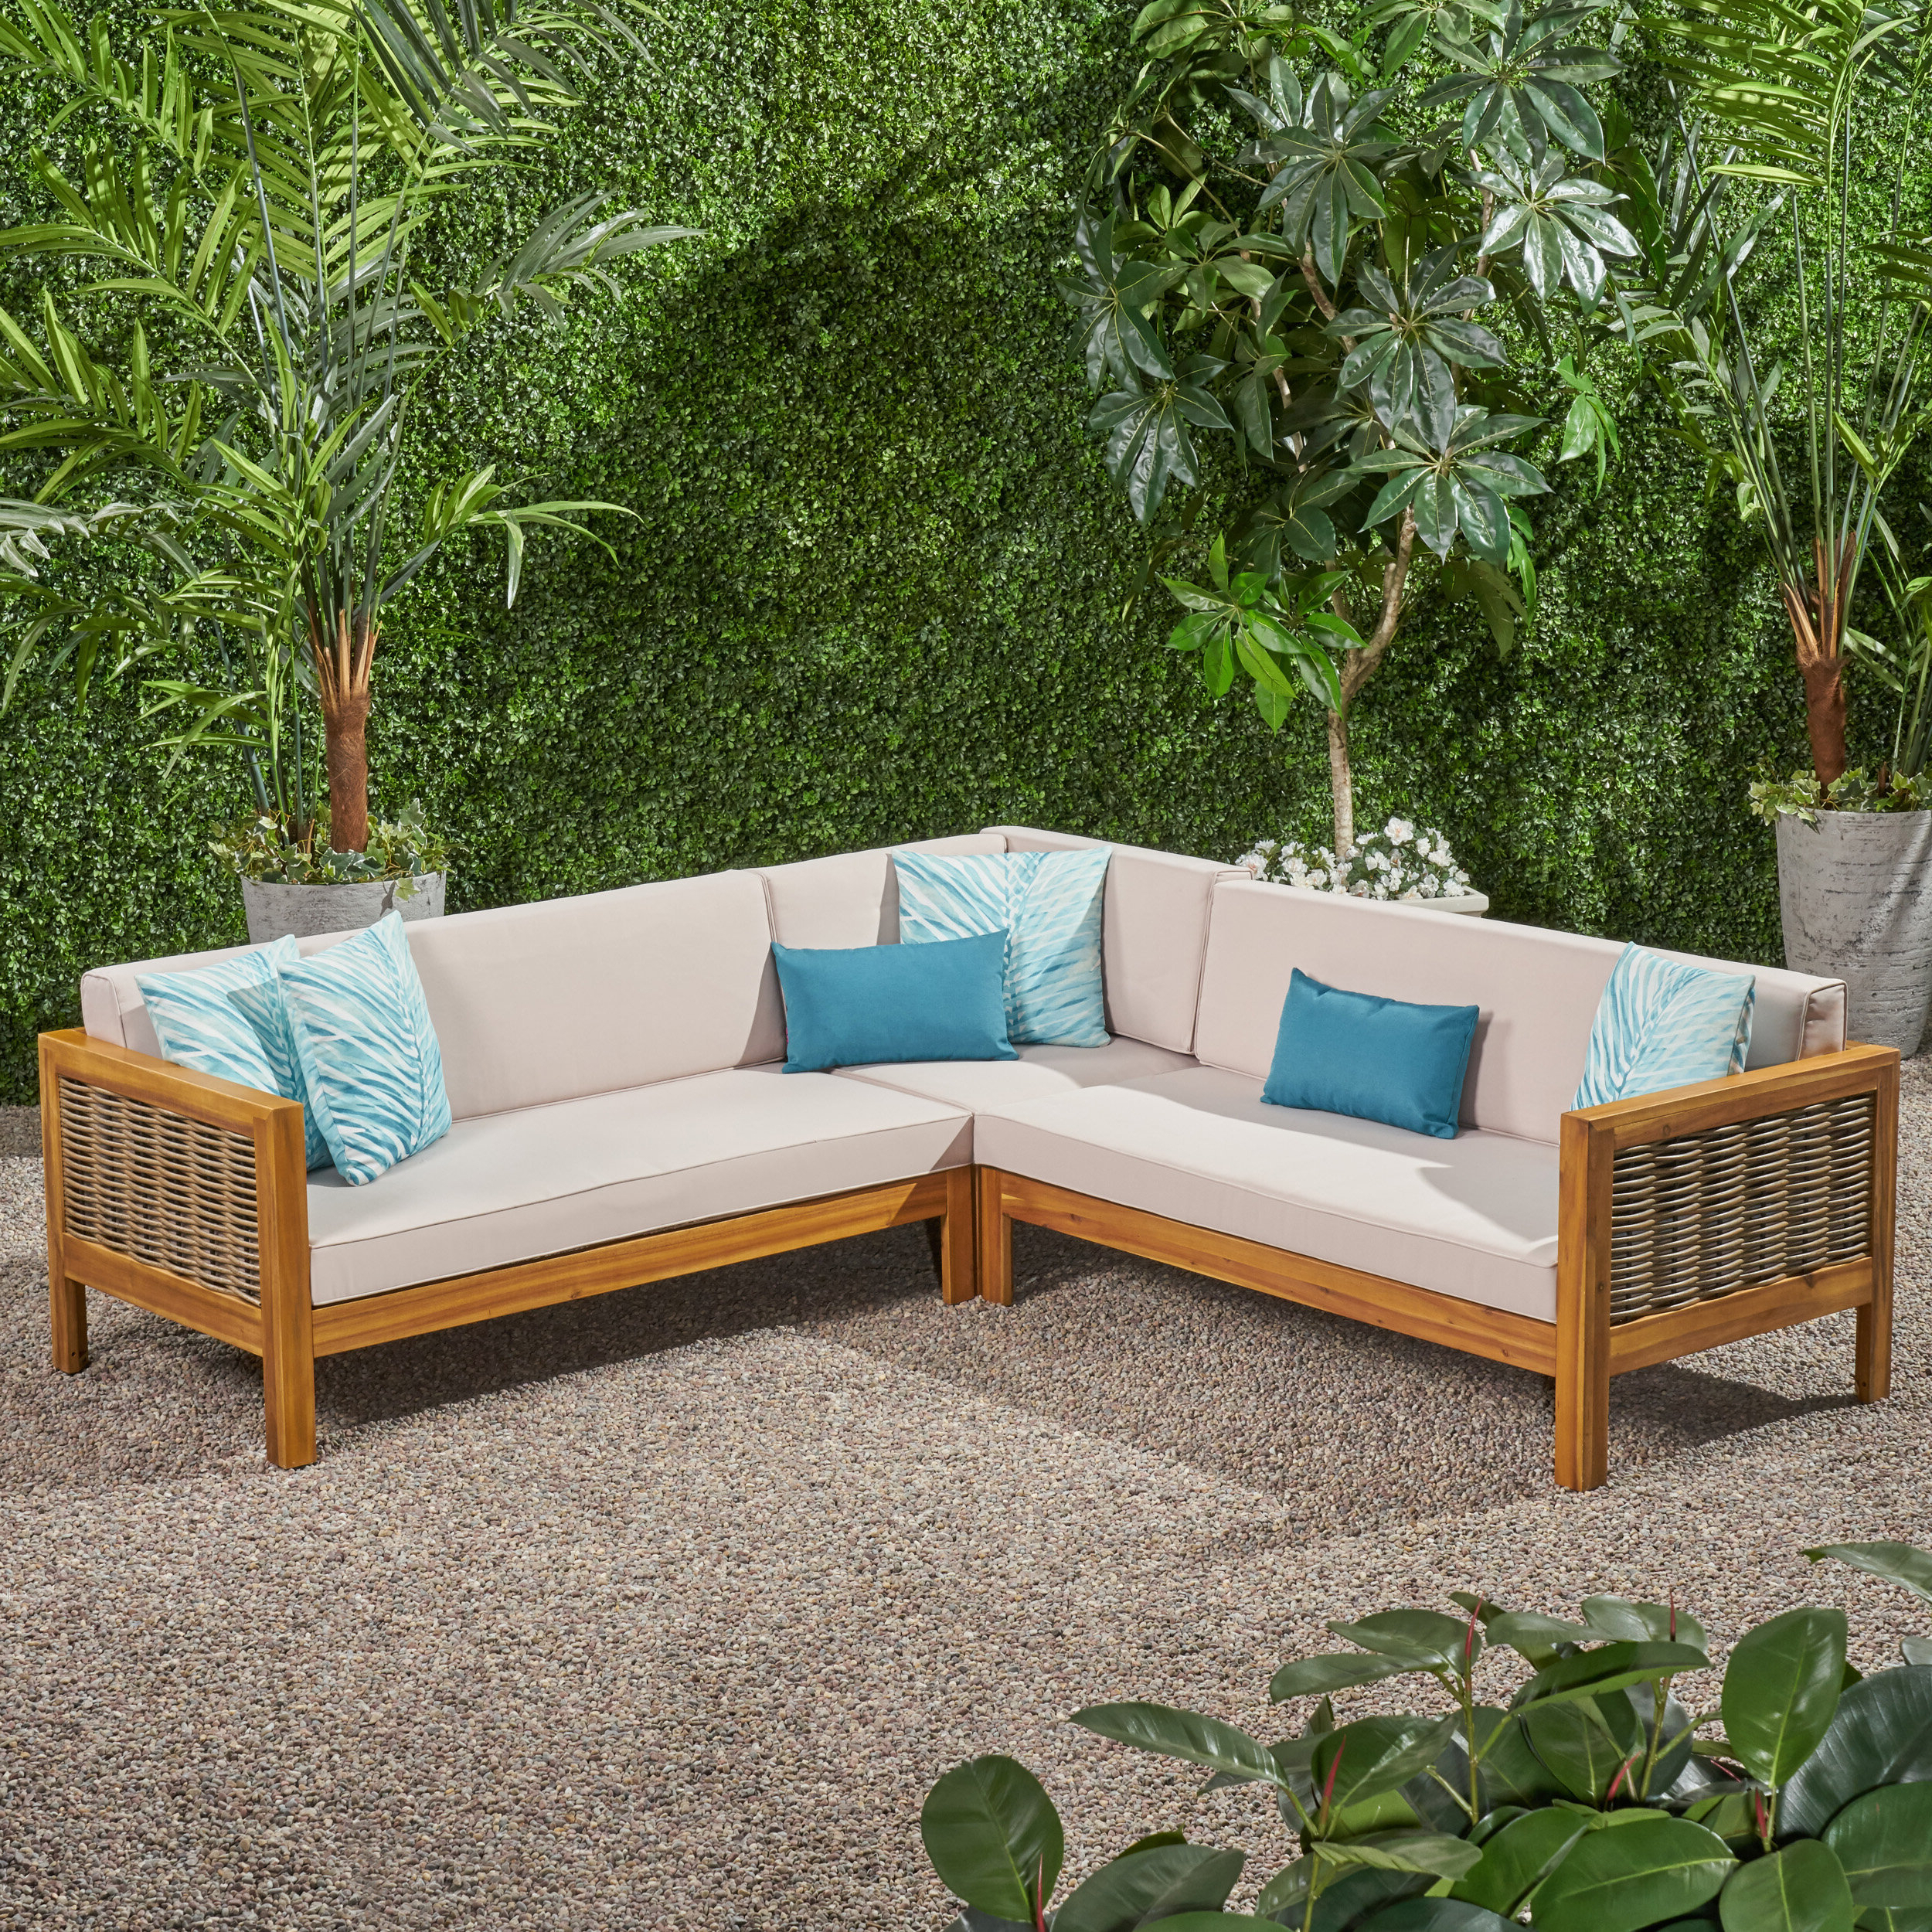 Famous Seaham Patio Sectionals With Cushions Within Kennison Patio Sectional With Cushions (View 14 of 20)